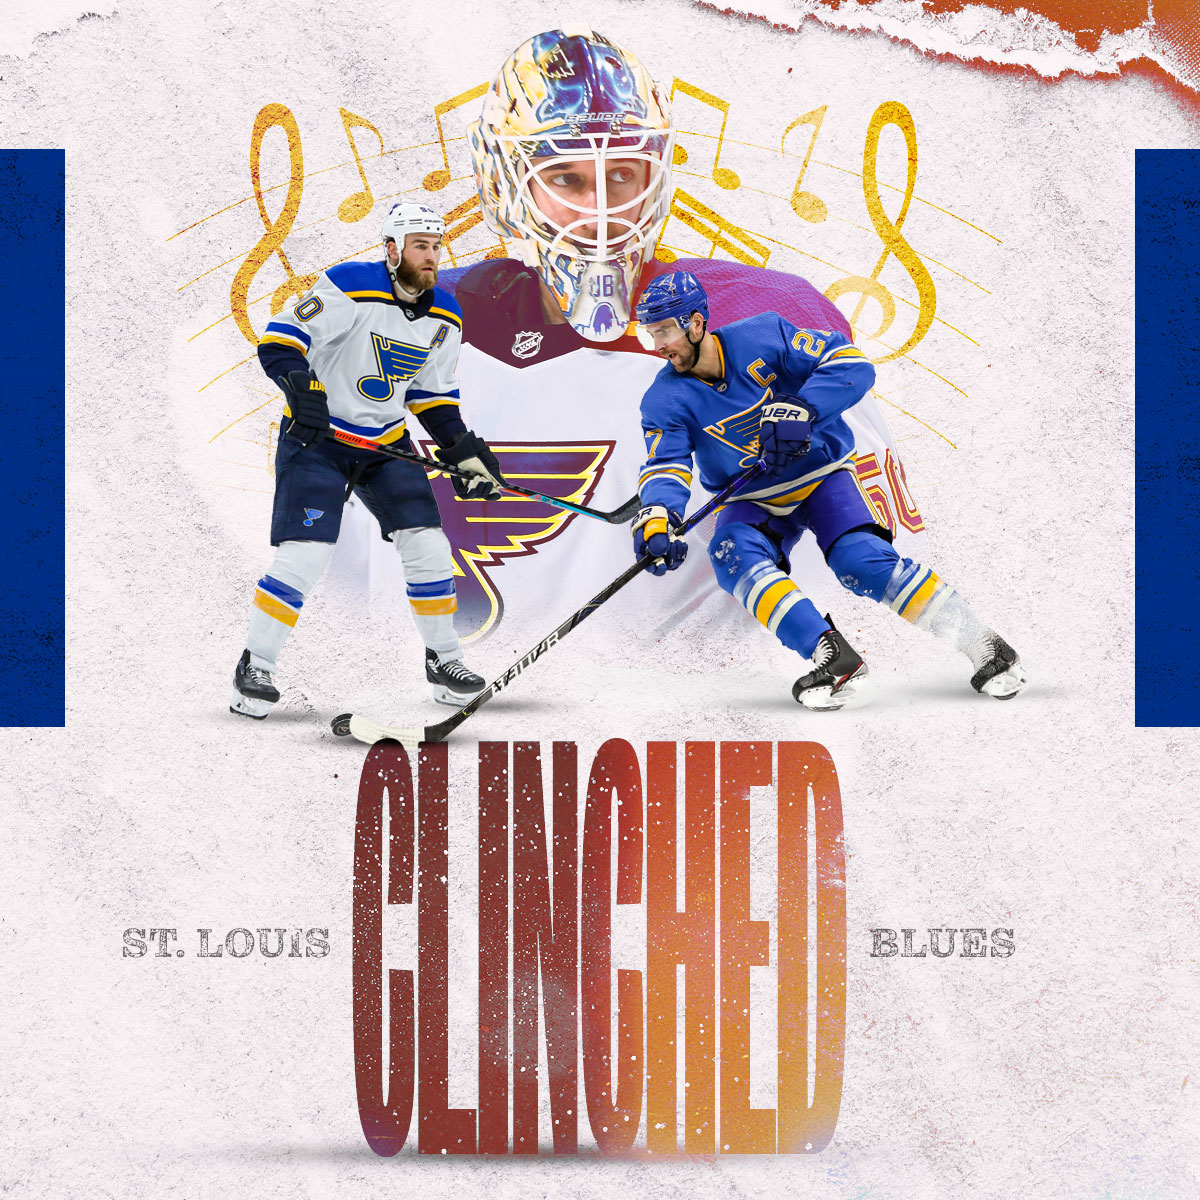 9️⃣4️⃣ points - the MOST in the Western Conference. The @StLouisBlues are headed to the 2020 Stanley Cup Playoffs and are looking for the REPEAT. 🏆 🏆 #stlblues